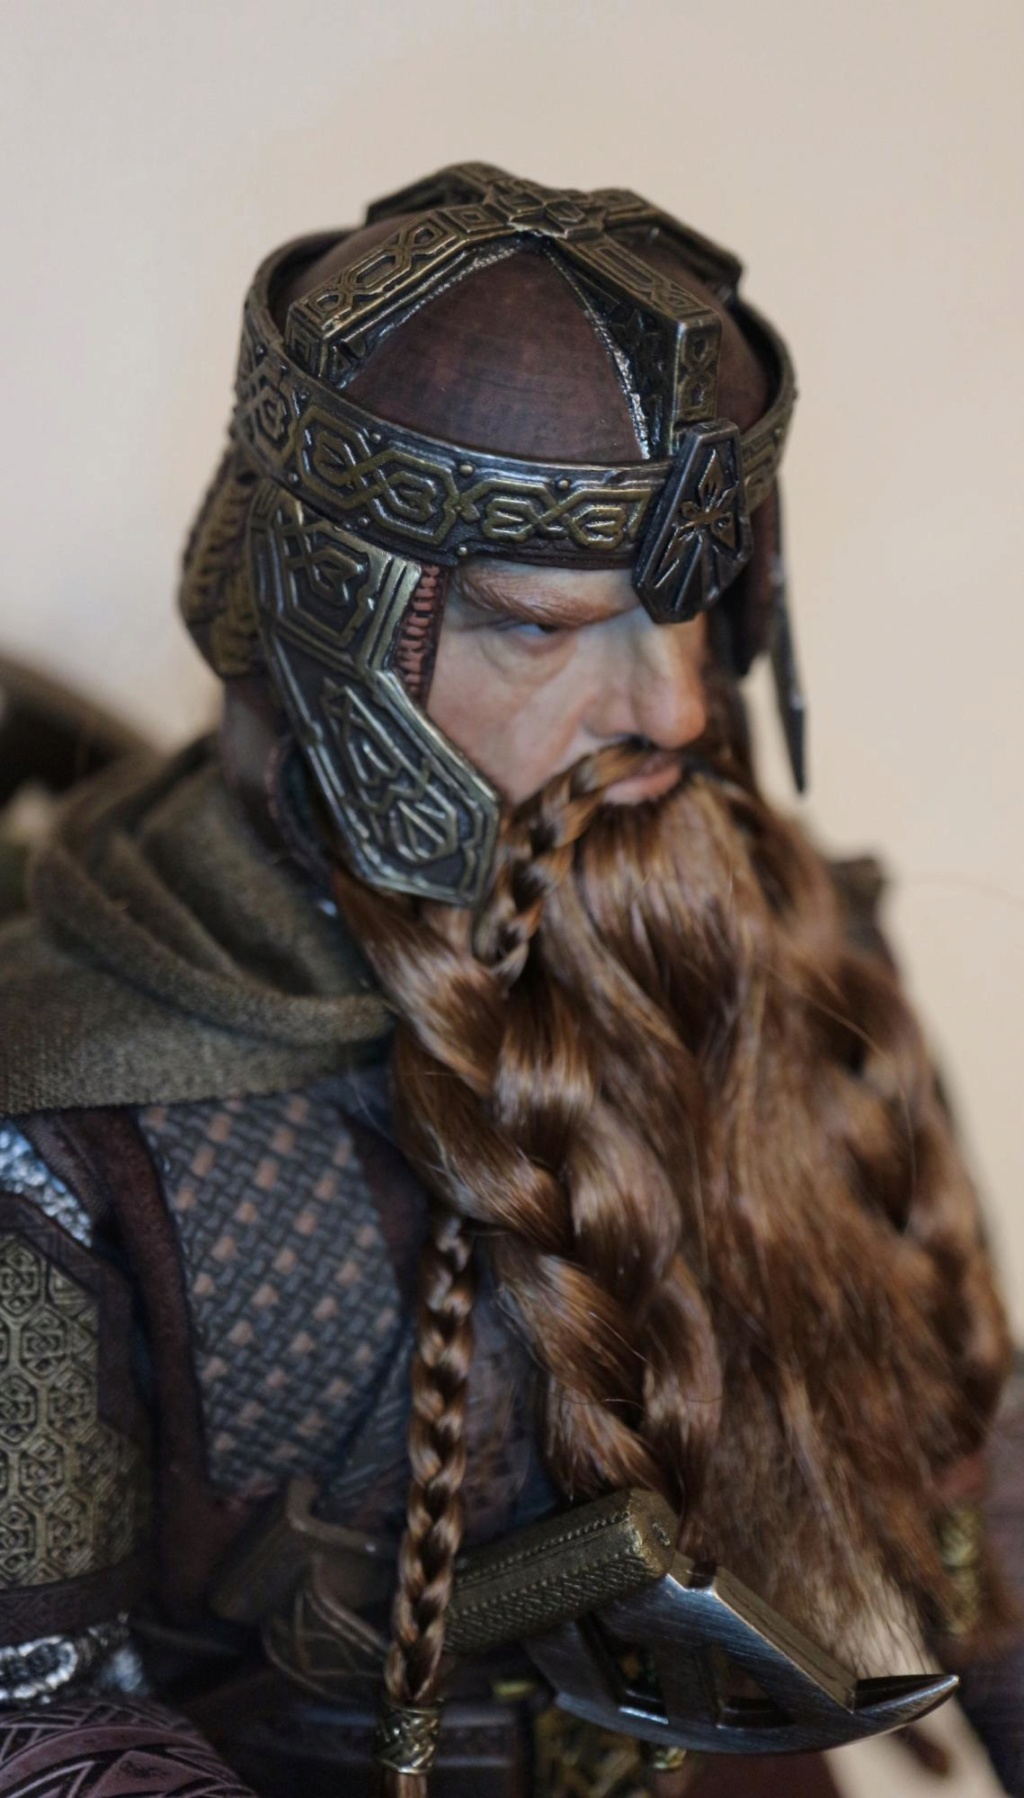 NEW PRODUCT: Asmus Toys The Lord of the Rings Series: Gimli (LOTR018) Timeme19